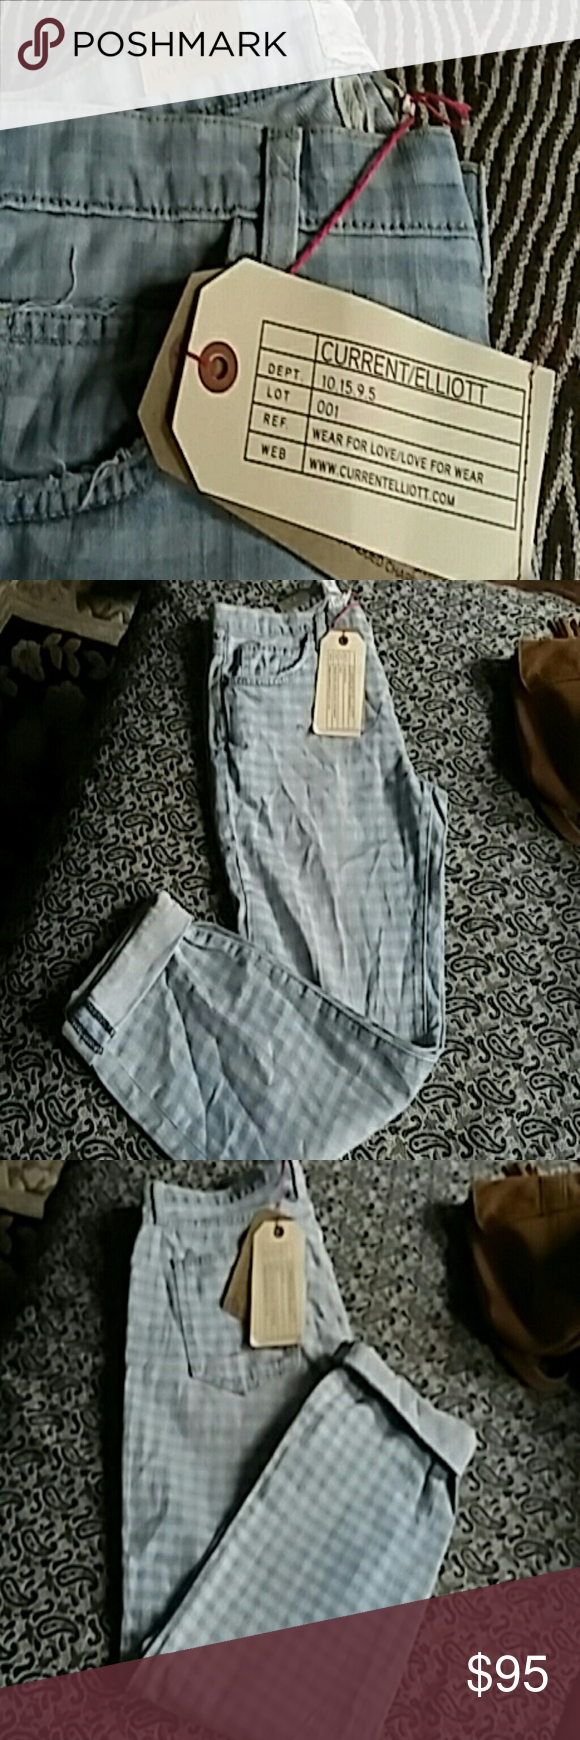 Current Elliot the boyfriend jeans. Ladies these are top of the line jeans. The fit and the style is the best right now. You won't be disappointed. Current Elliot Jeans Boyfriend